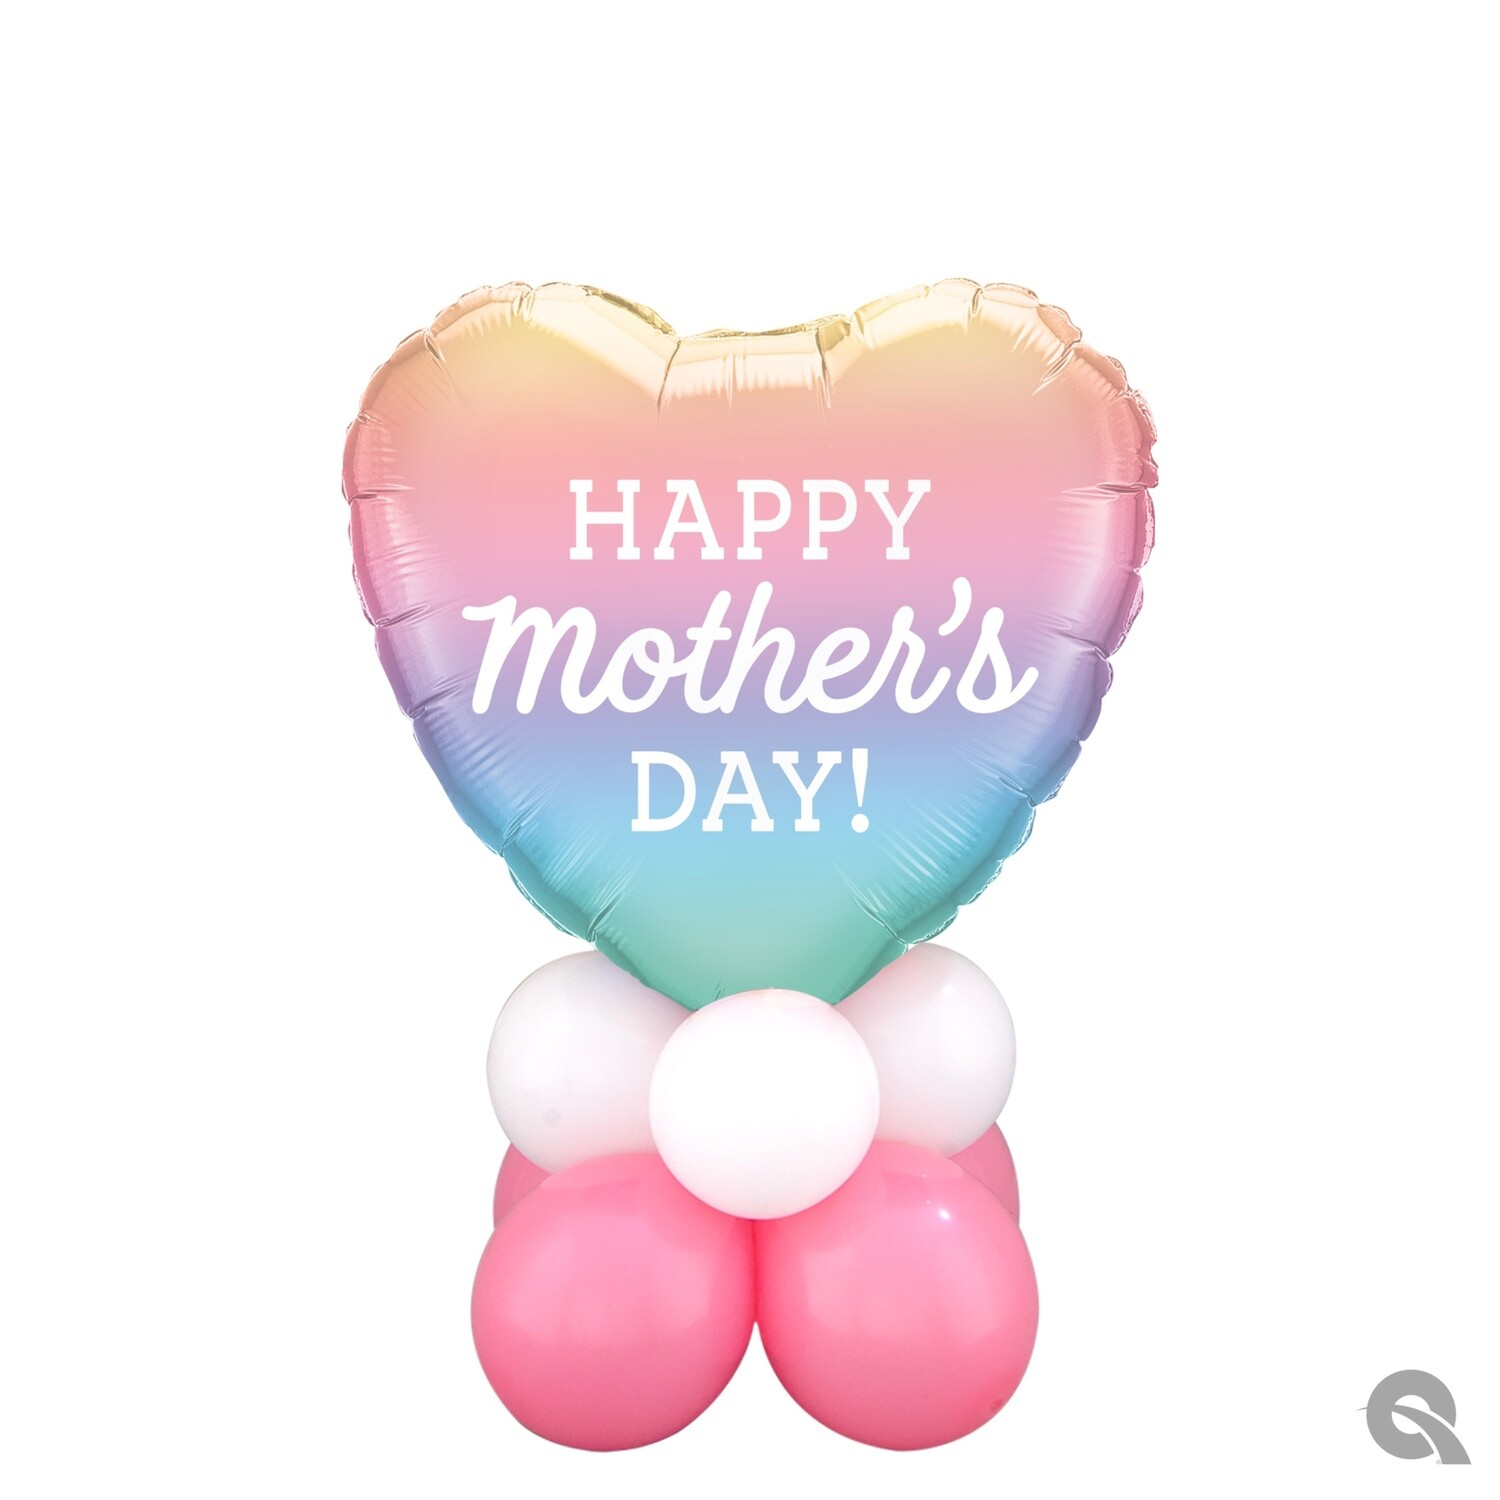 Happy Mother's Day Balloon Bouquet Designs